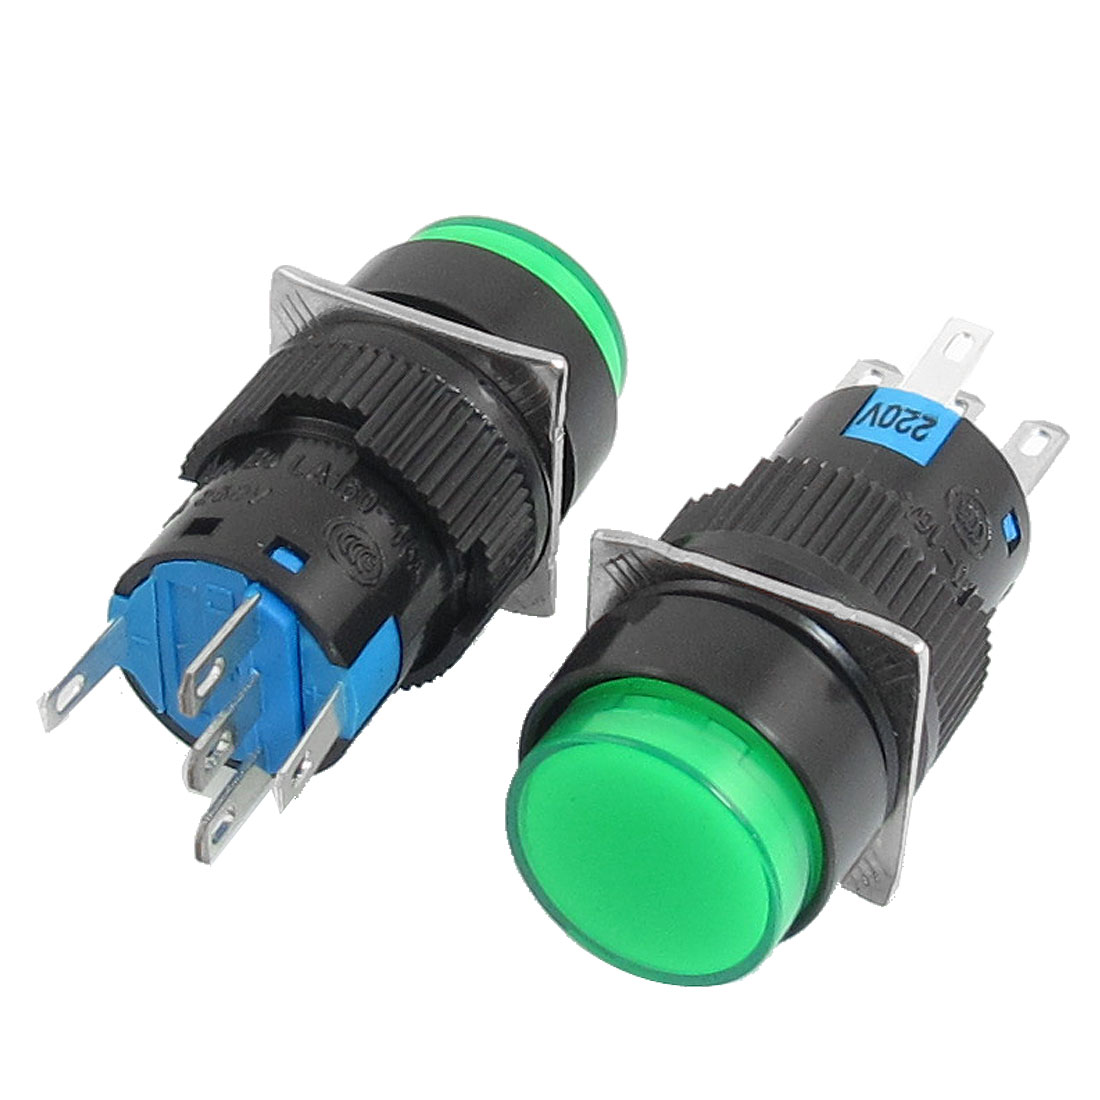 2Pcs AC 220V Lamp 5P SPDT Green Round Cap Momentary Push Button Switch